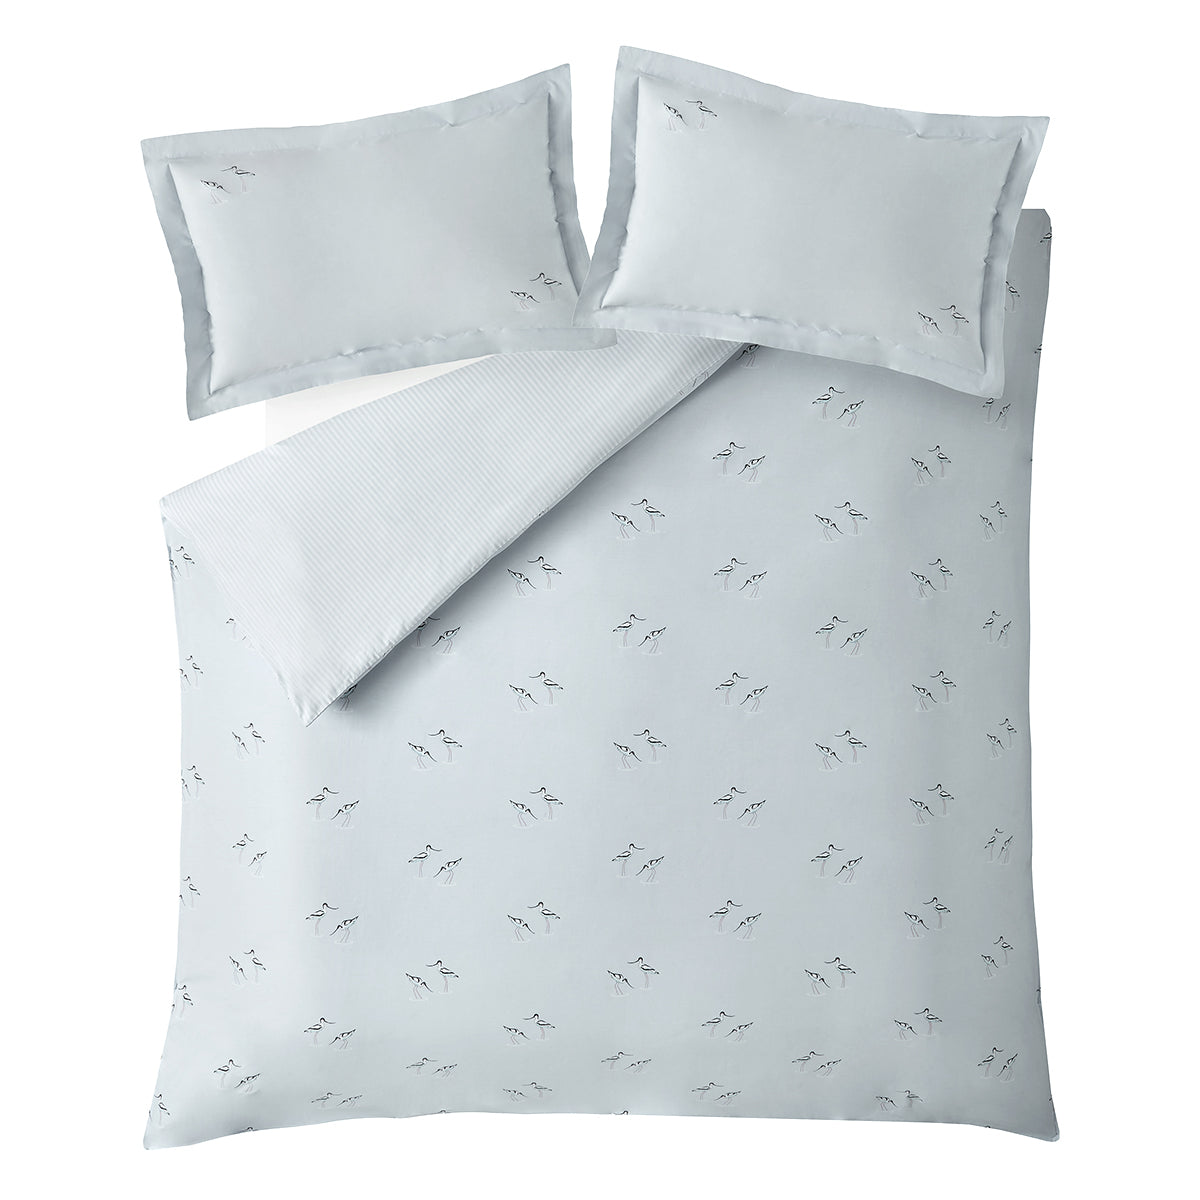 Coastal Birds Bedding Set by Sophie Allport